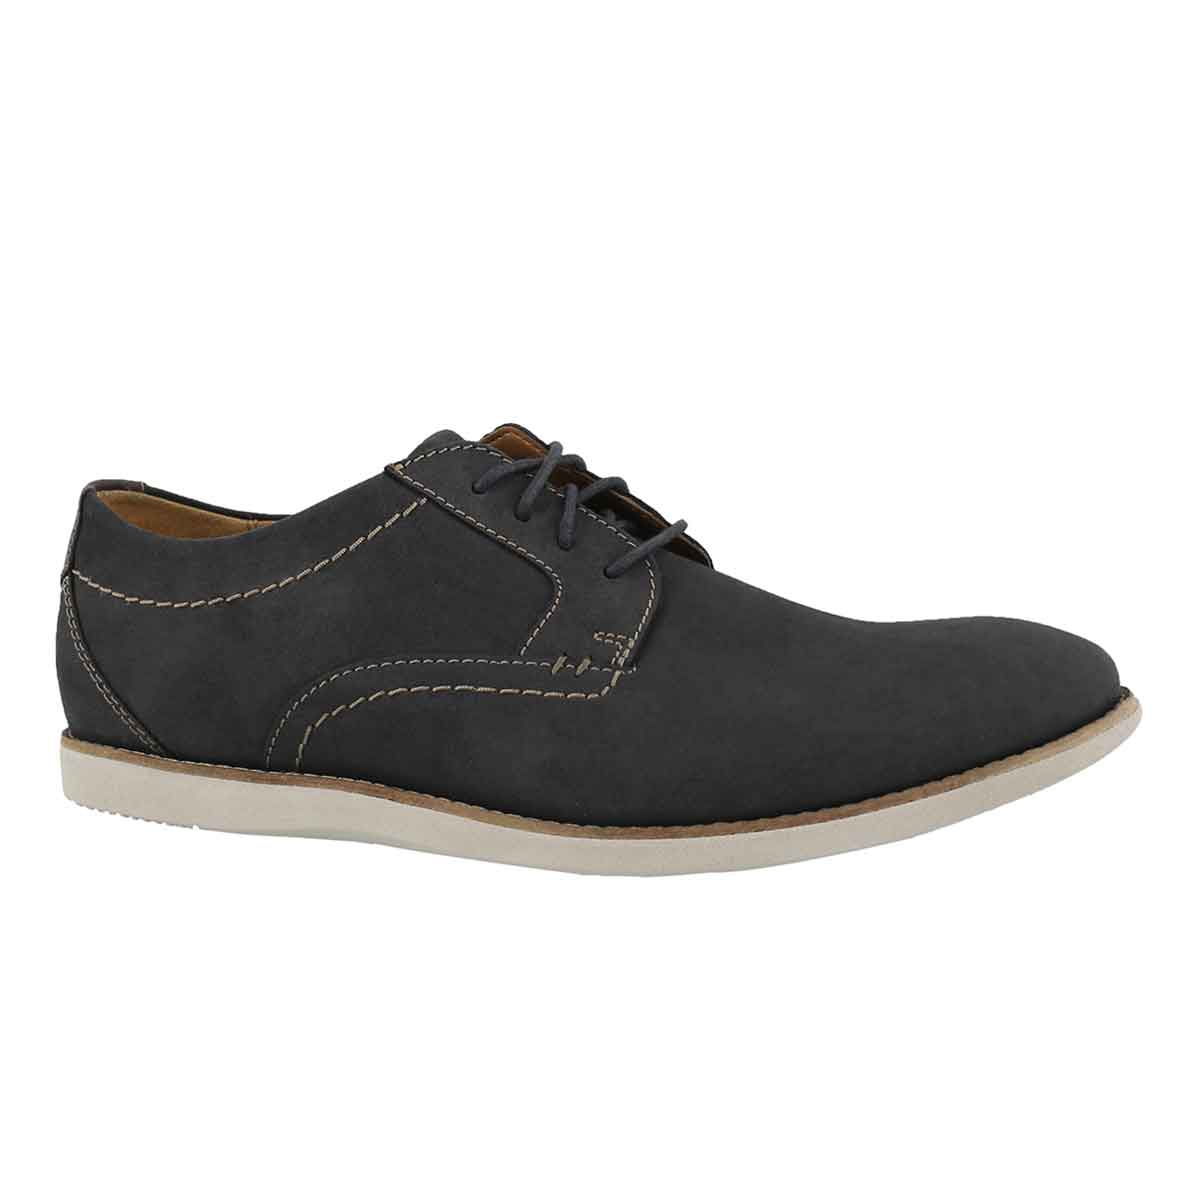 Men's RAHARTO PLAIN blue dress oxfords